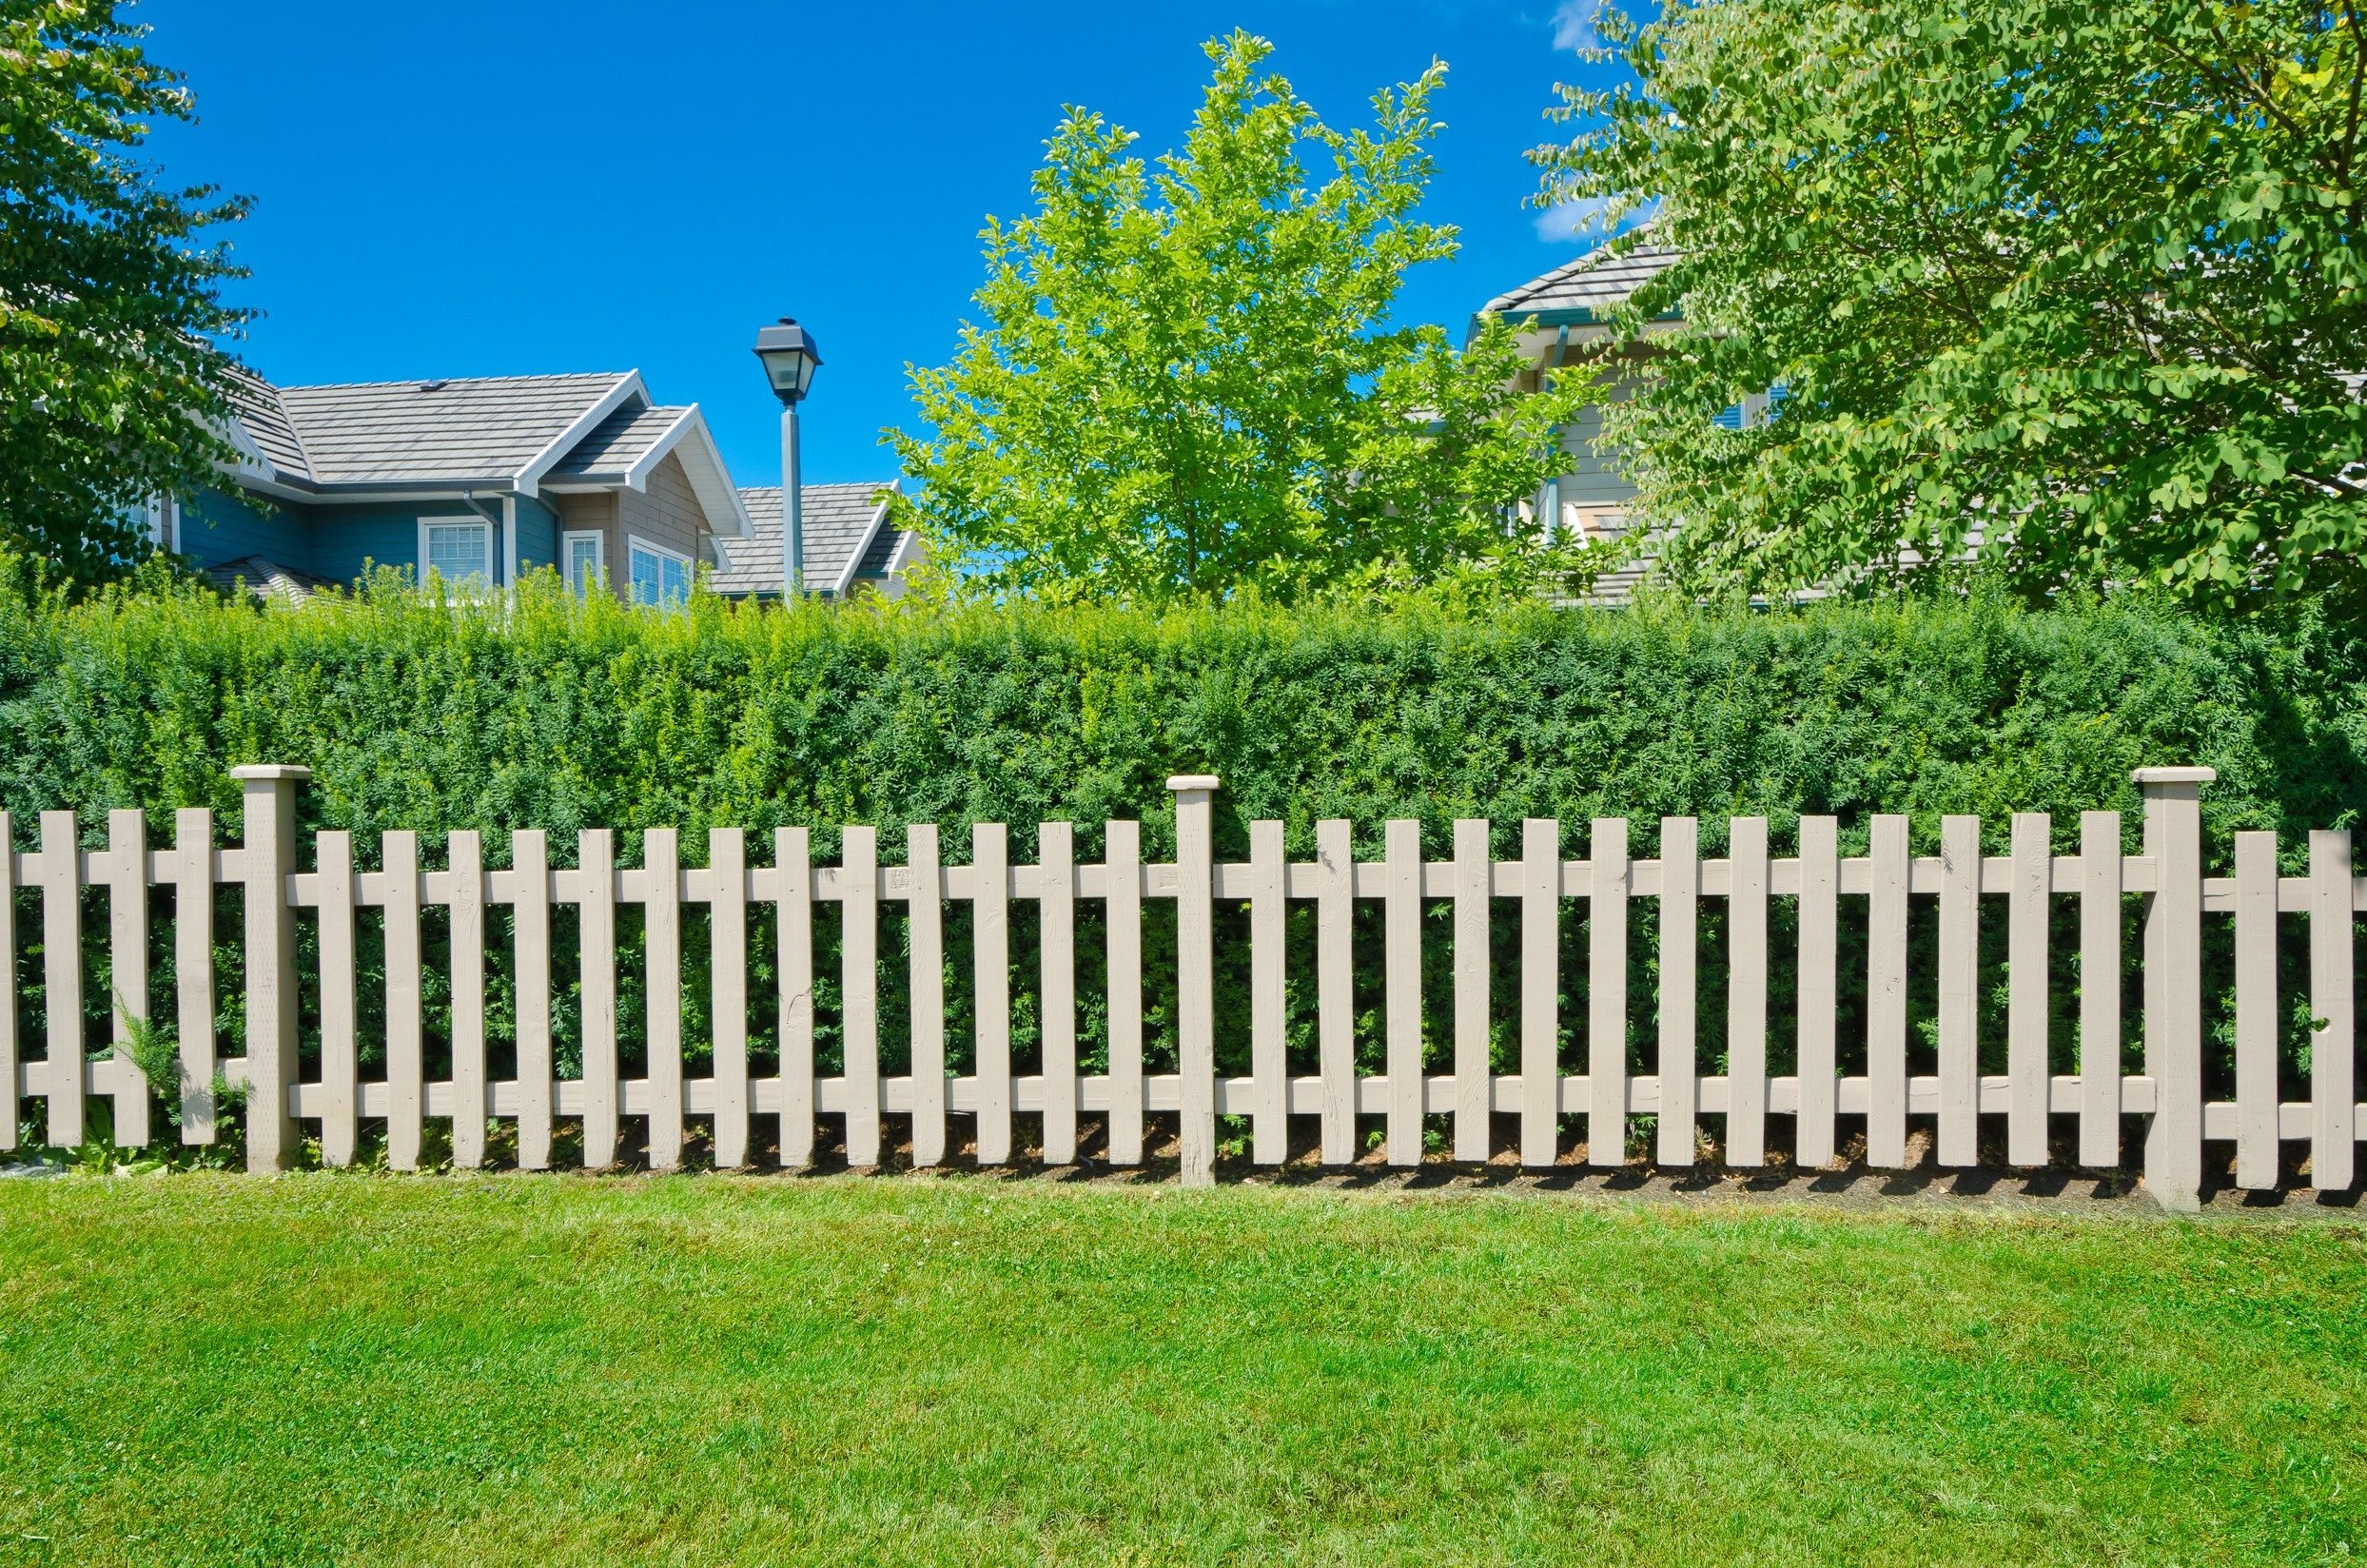 County style long wooden fence.